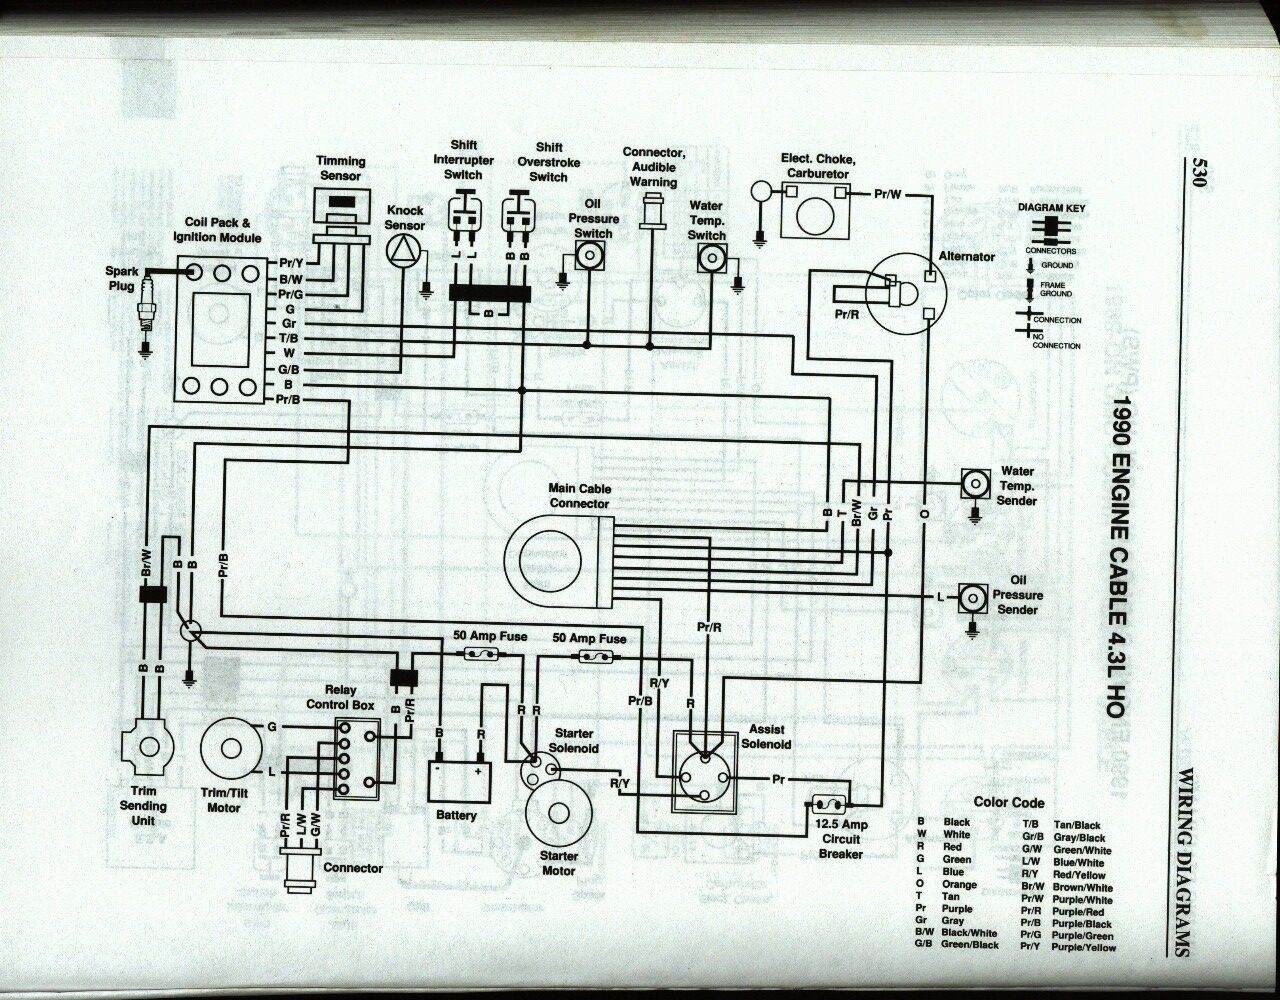 Omc Wire Diagram Auto Electrical Wiring Instrumentation Basics 1993 Evinrude 50 31 Images